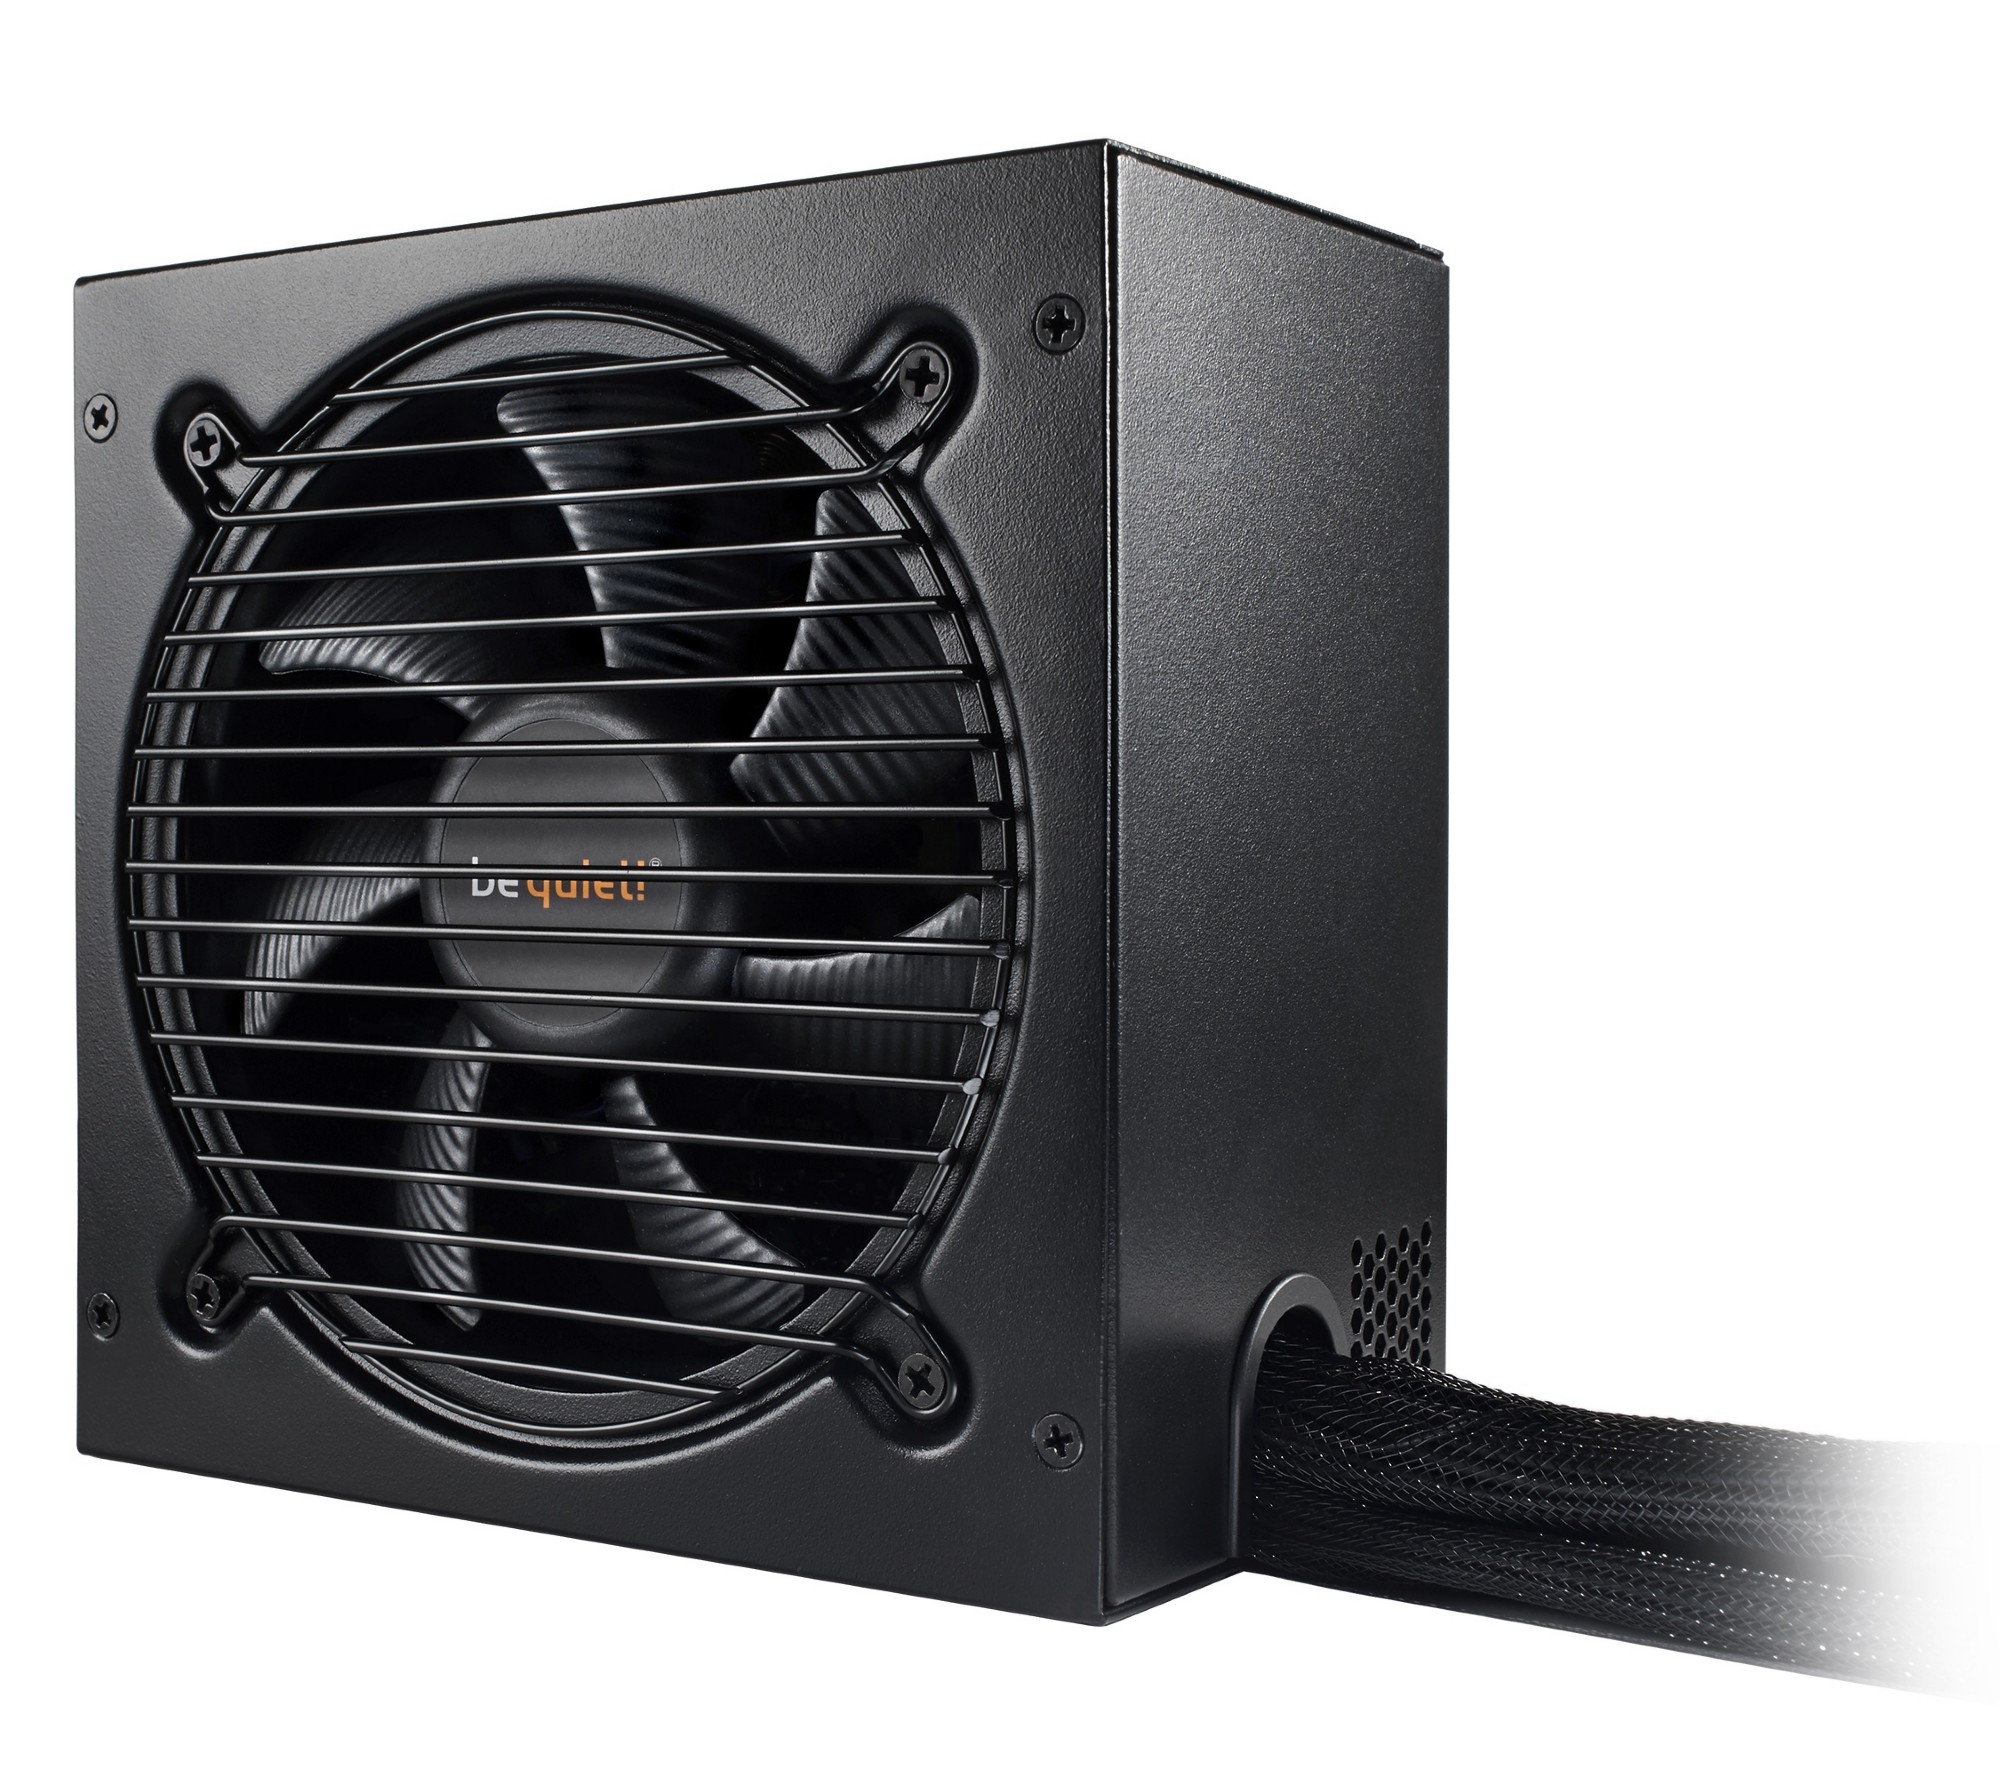 BE QUIET! BN295 PURE POWER 11 700W SUPPLY UNIT ATX BLACK